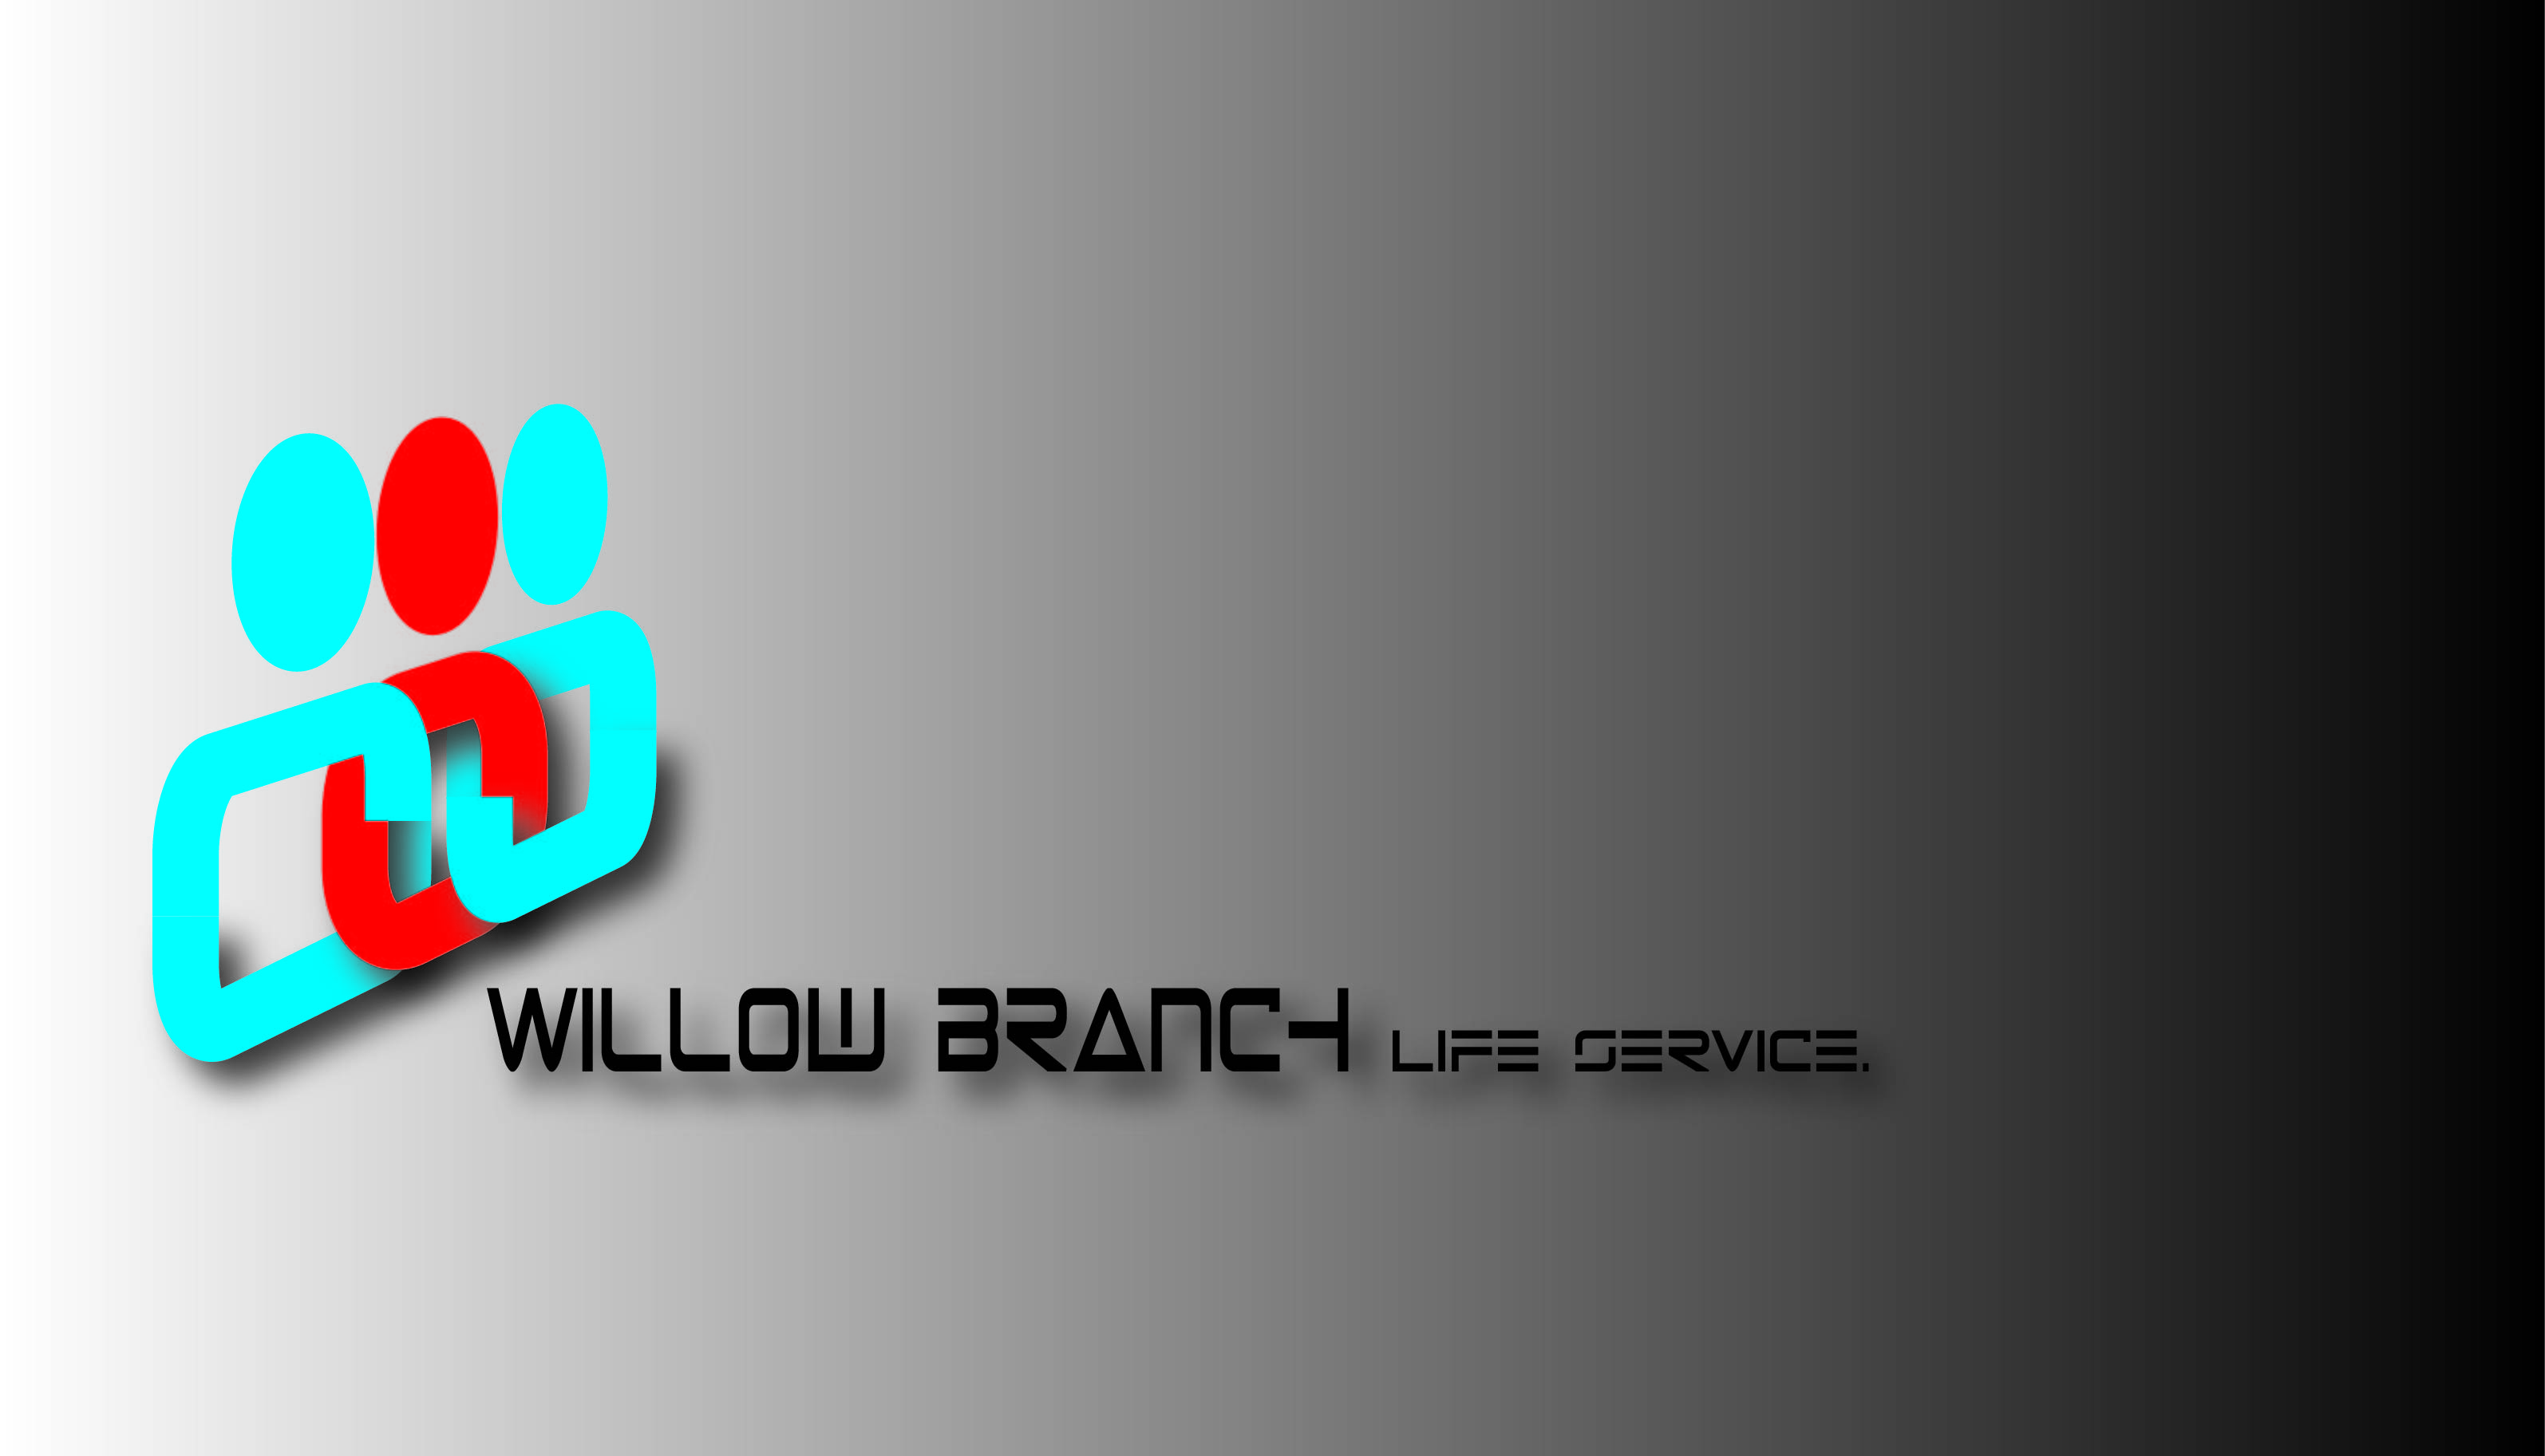 Logo Design by Girish Bhoite - Entry No. 283 in the Logo Design Contest Artistic Logo Design for Willow Branch Life Service.